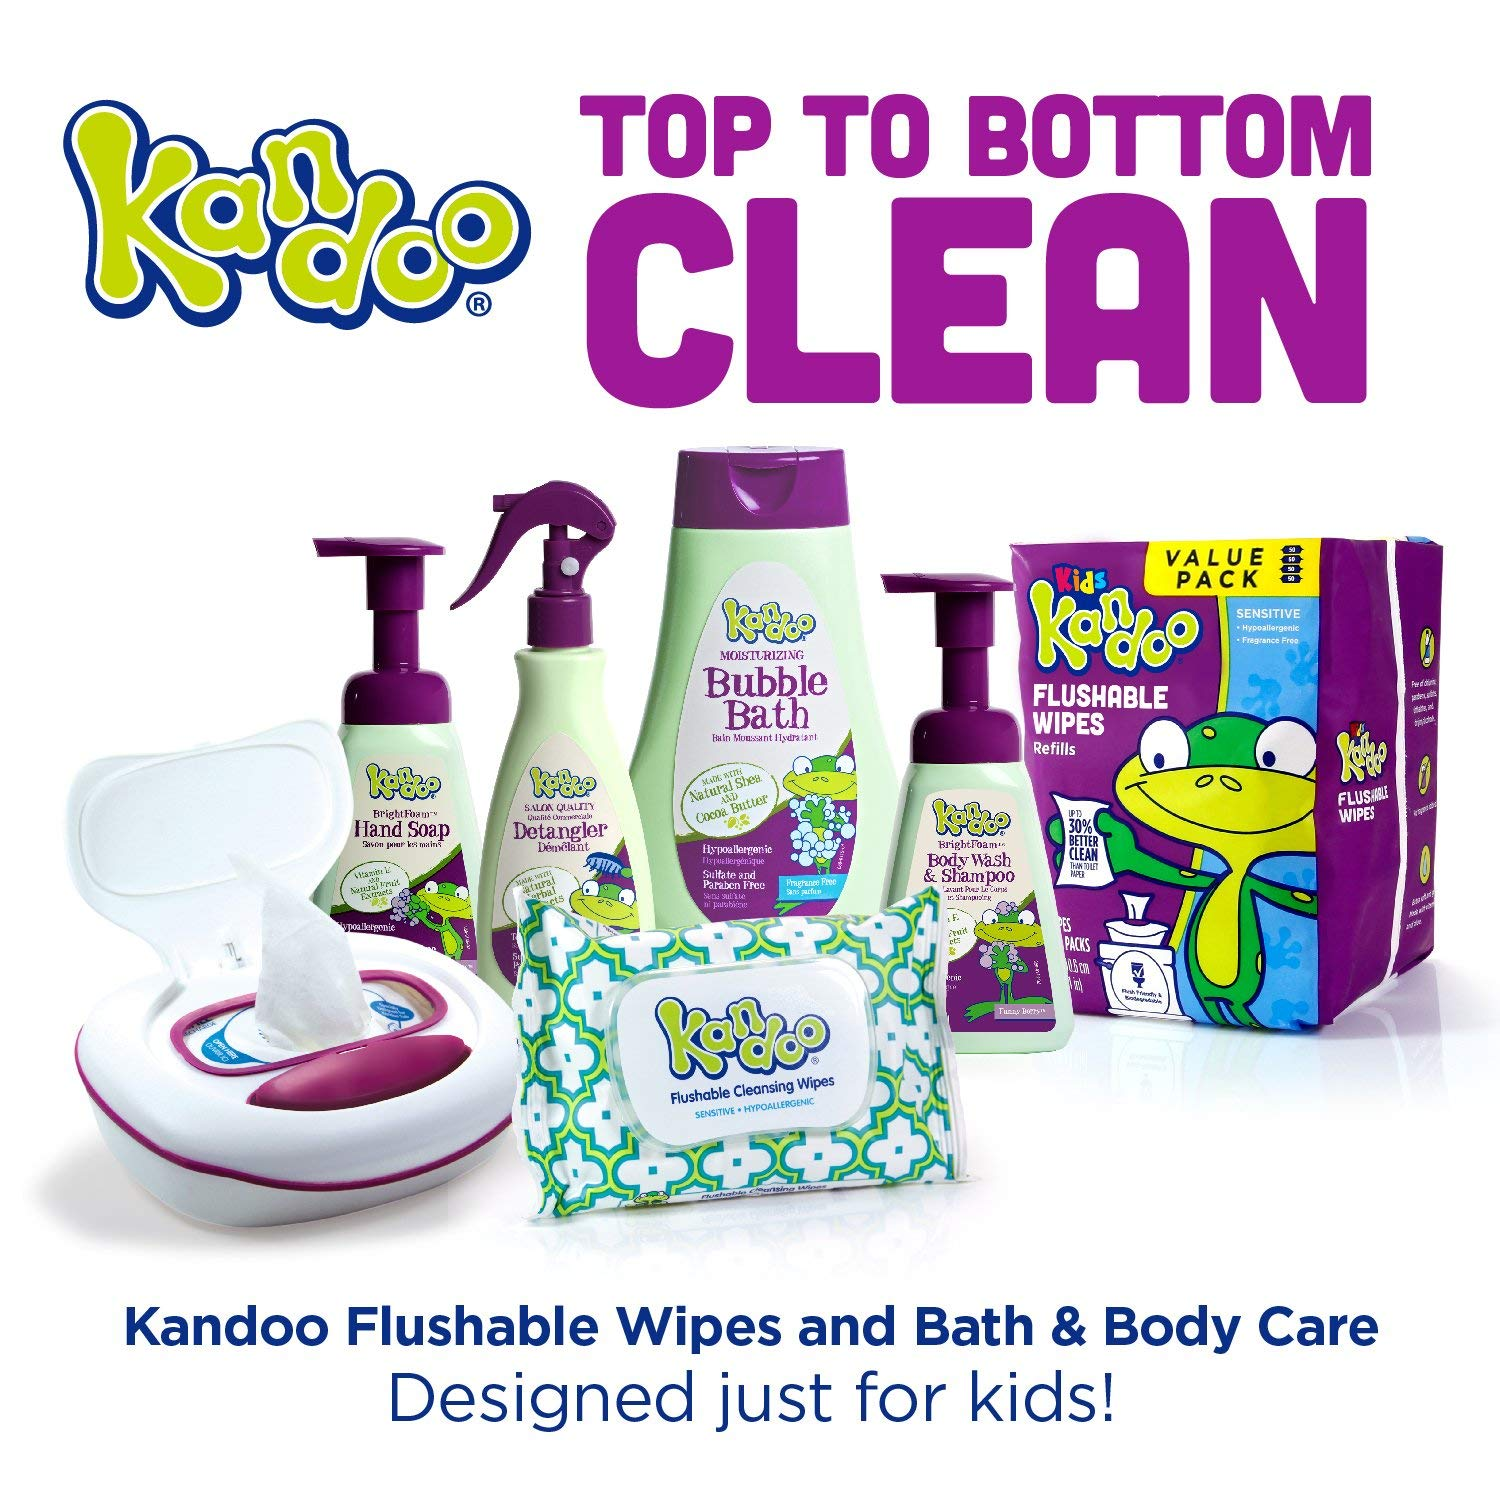 Flushable Baby Wipes for Kids, Sensitive by Kandoo, Hypoallergenic Potty Training Wet Cleansing Cloths Refills, Unscented, 250 Count per Pack, Pack of 4 by Kandoo (Image #7)